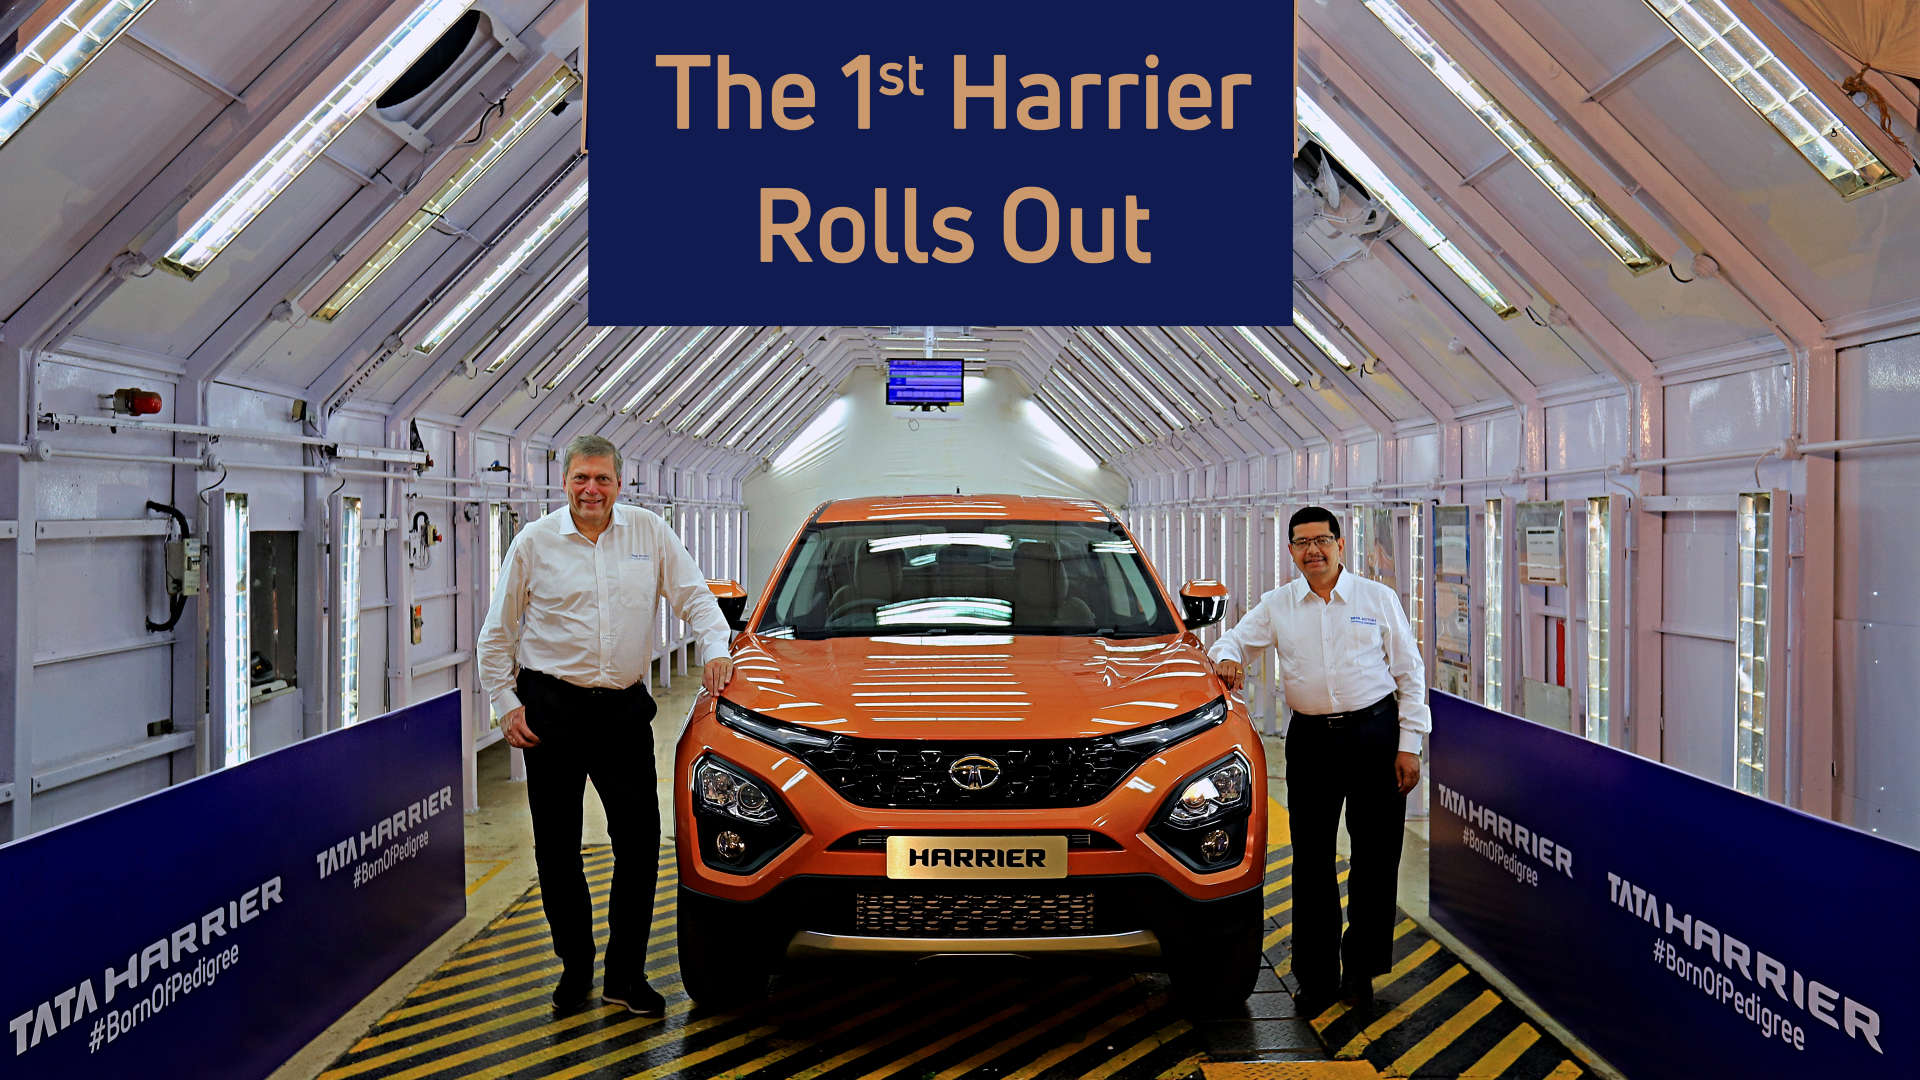 tata motors rolls out first harrier from pune, auto news, et auto